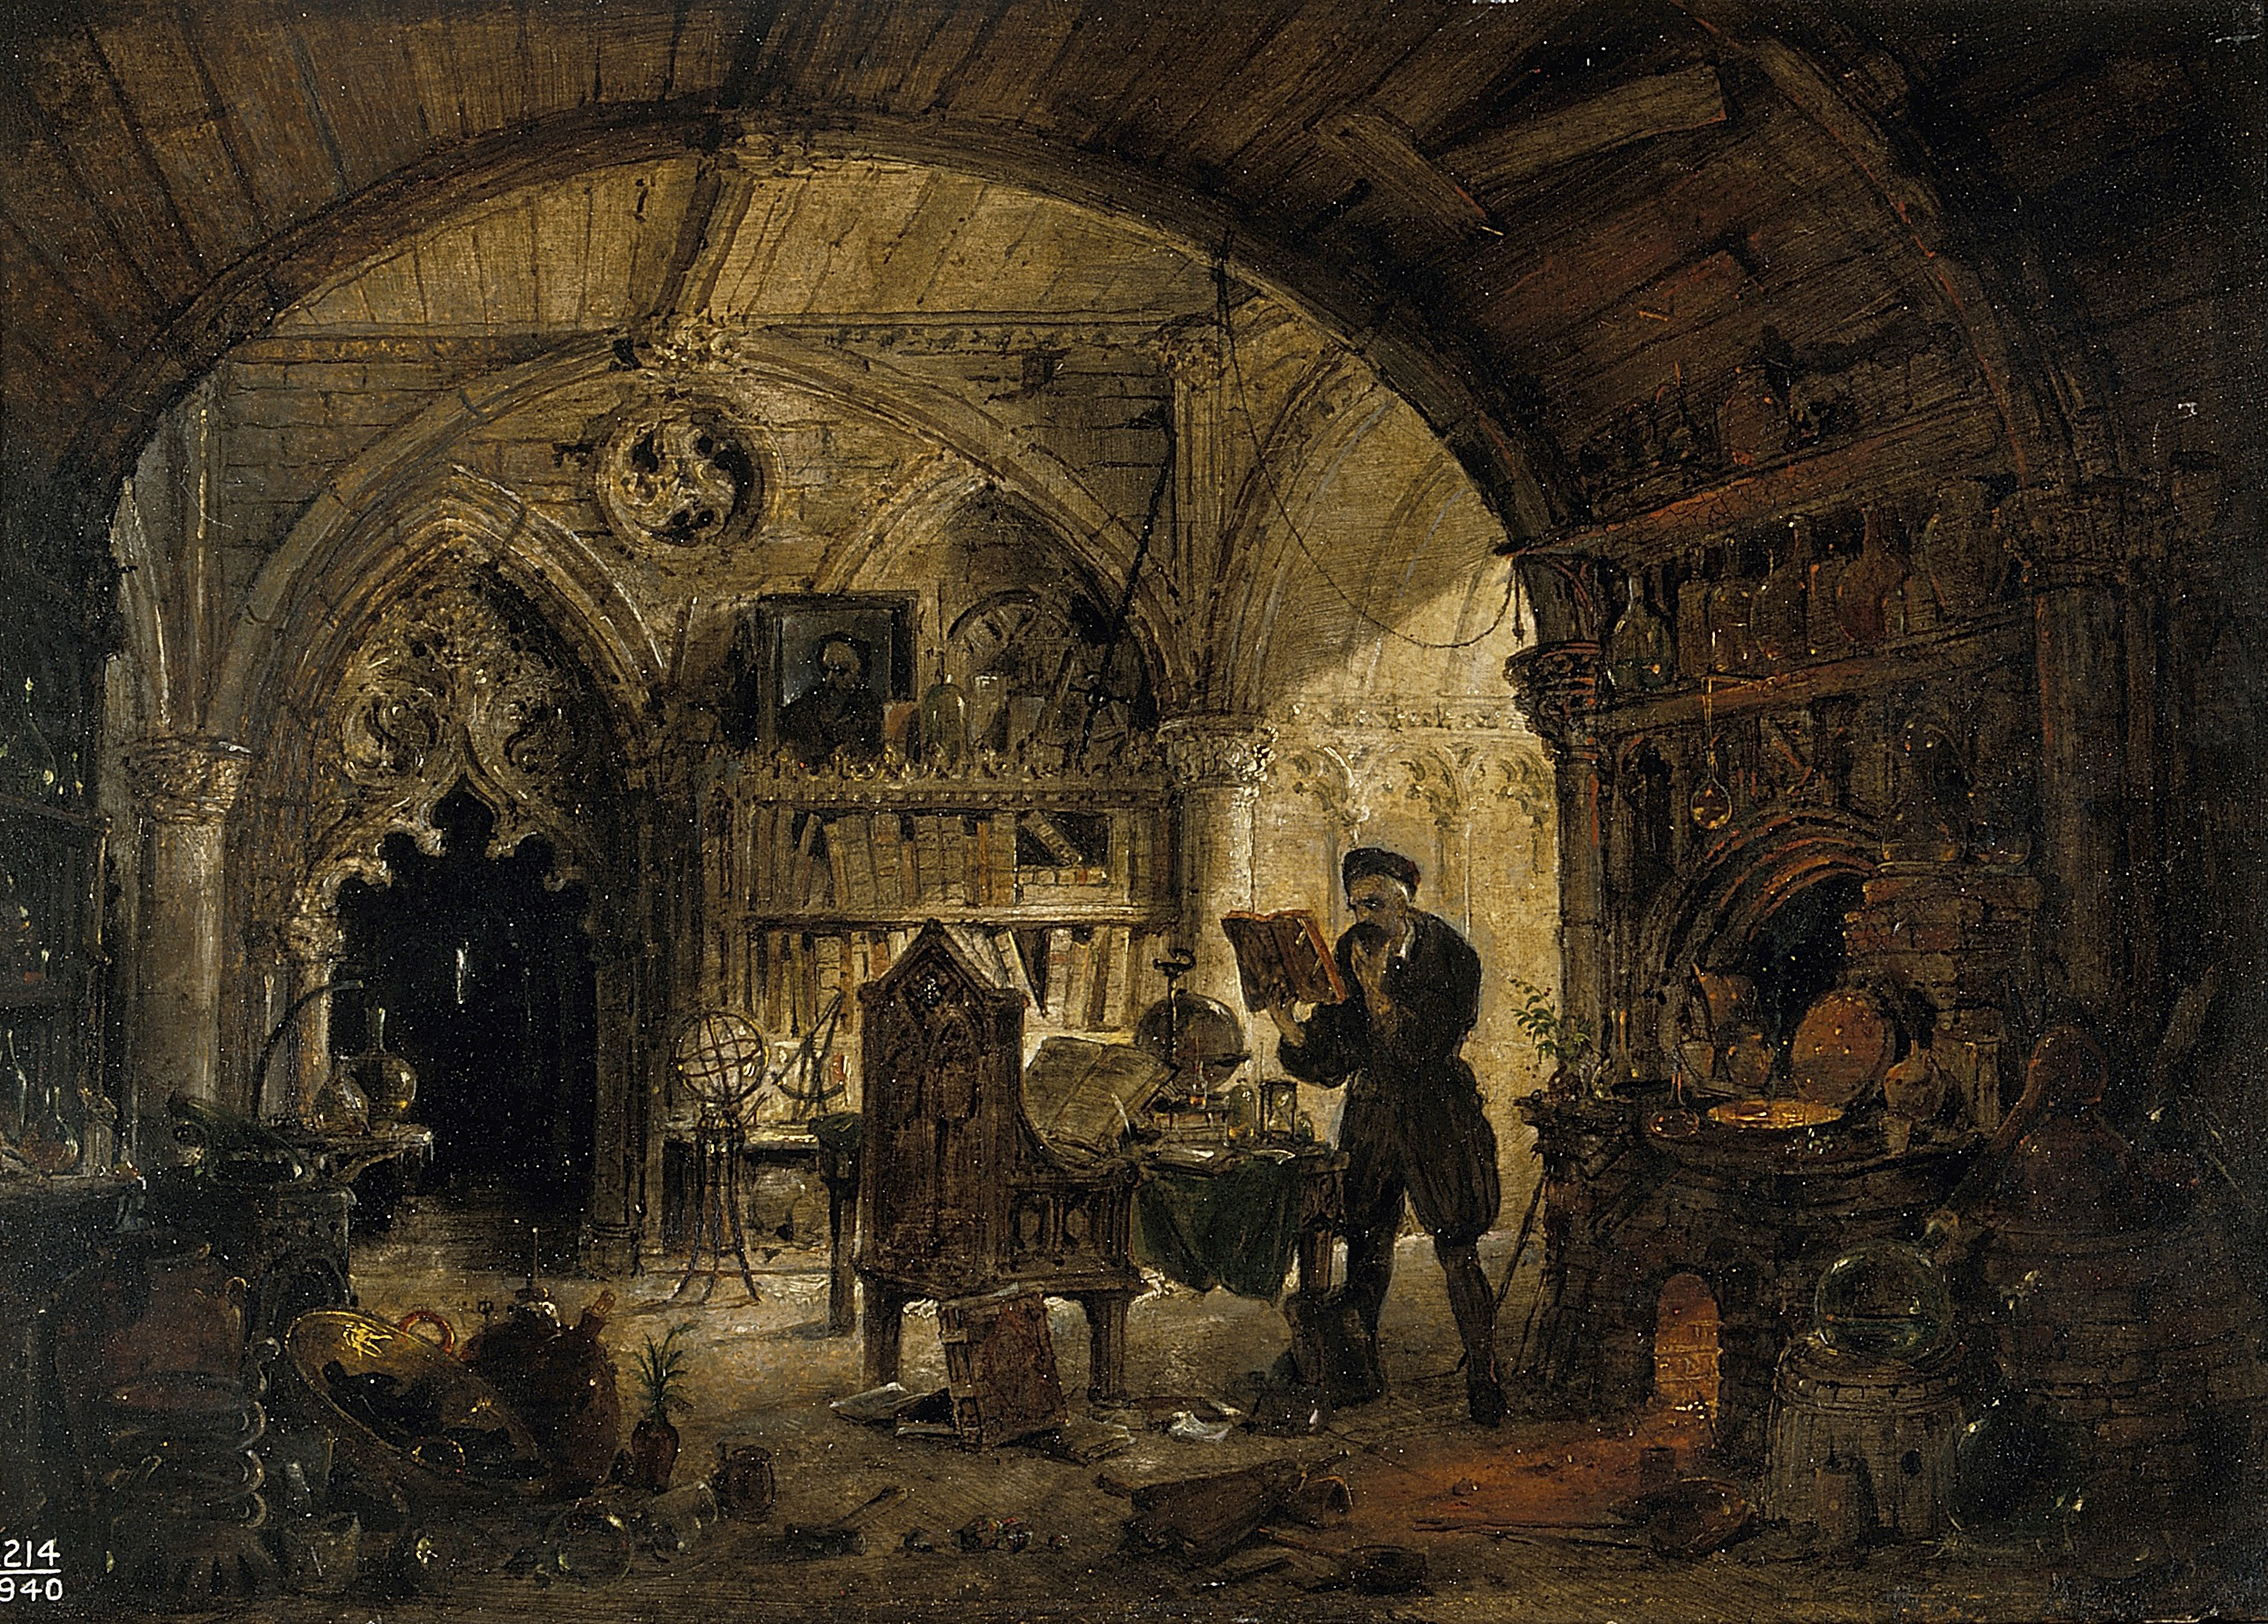 V0017640 An alchemist in his laboratory. Oil painting by James Nasmyt Credit: Wellcome Library, London. Wellcome Images images@wellcome.ac.uk http://wellcomeimages.org An alchemist in his laboratory. Oil painting by James Nasmyth. By: James NasmythPublished: - Copyrighted work available under Creative Commons Attribution only licence CC BY 4.0 http://creativecommons.org/licenses/by/4.0/